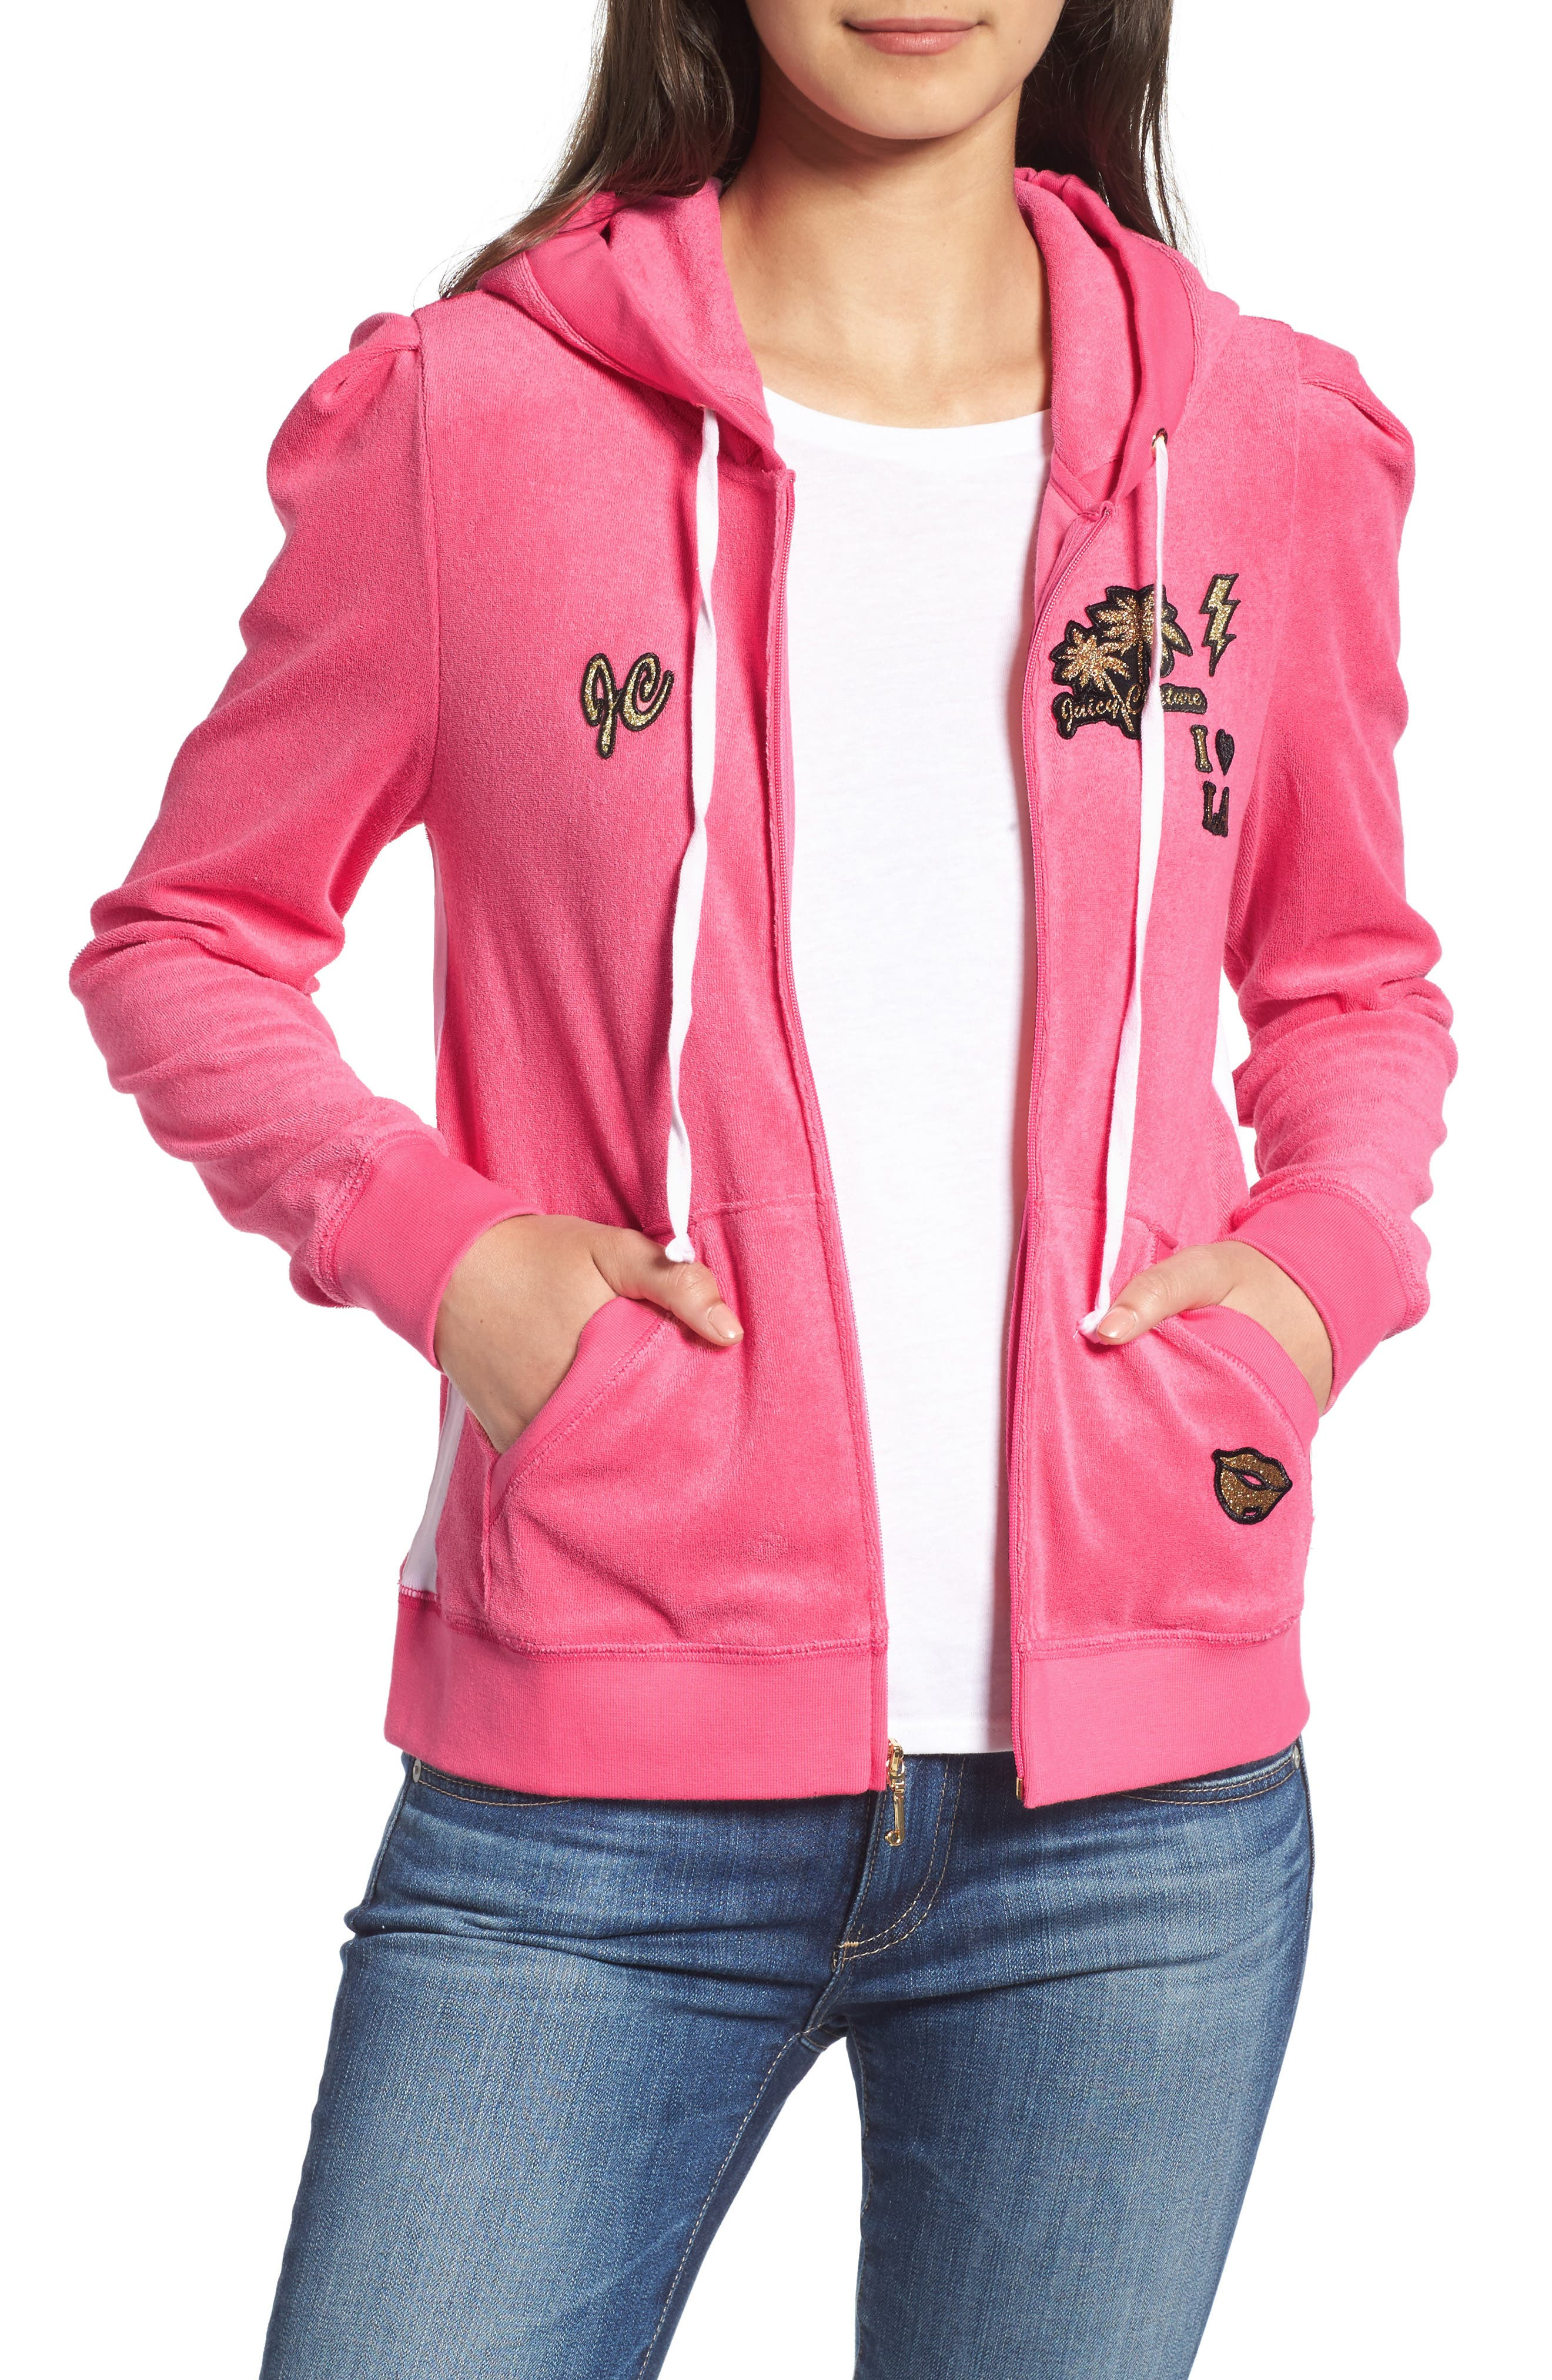 Alternate Image 1 Selected - Juicy Couture Venice Beach Microterry Hoodie